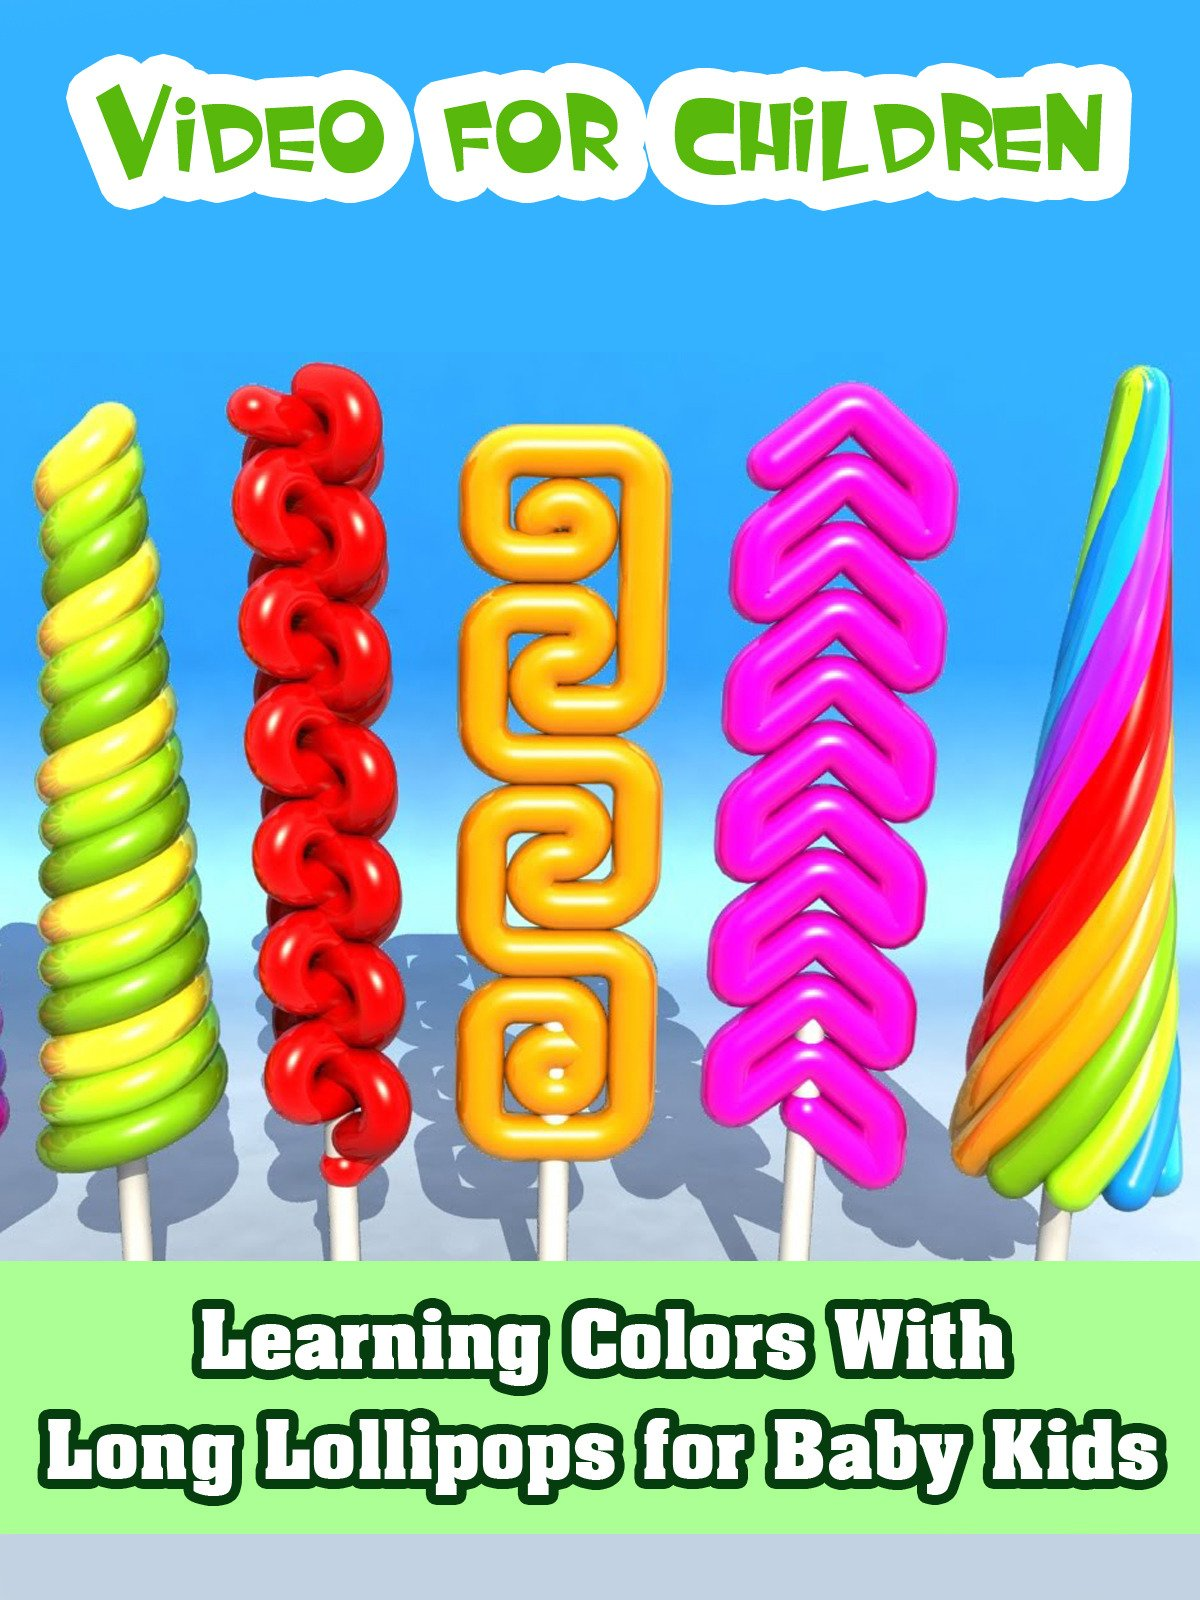 Learning Colors With Long Lollipops for Baby Kids